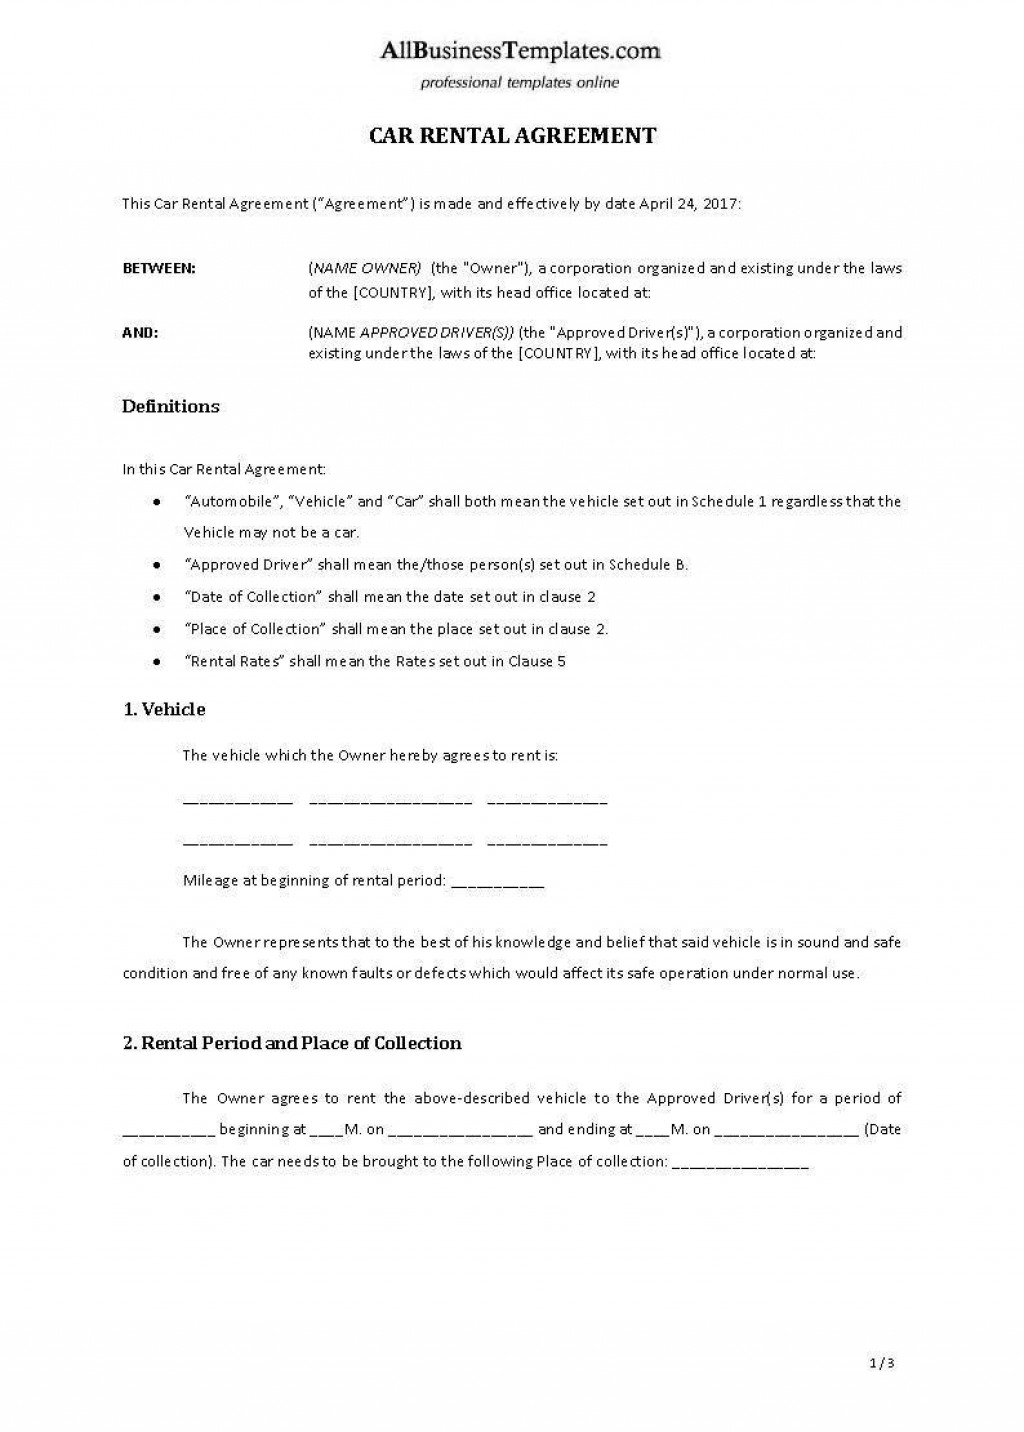 006 Breathtaking Car Rental Agreement Template High Def  Vehicle Rent To Own South Africa SingaporeLarge